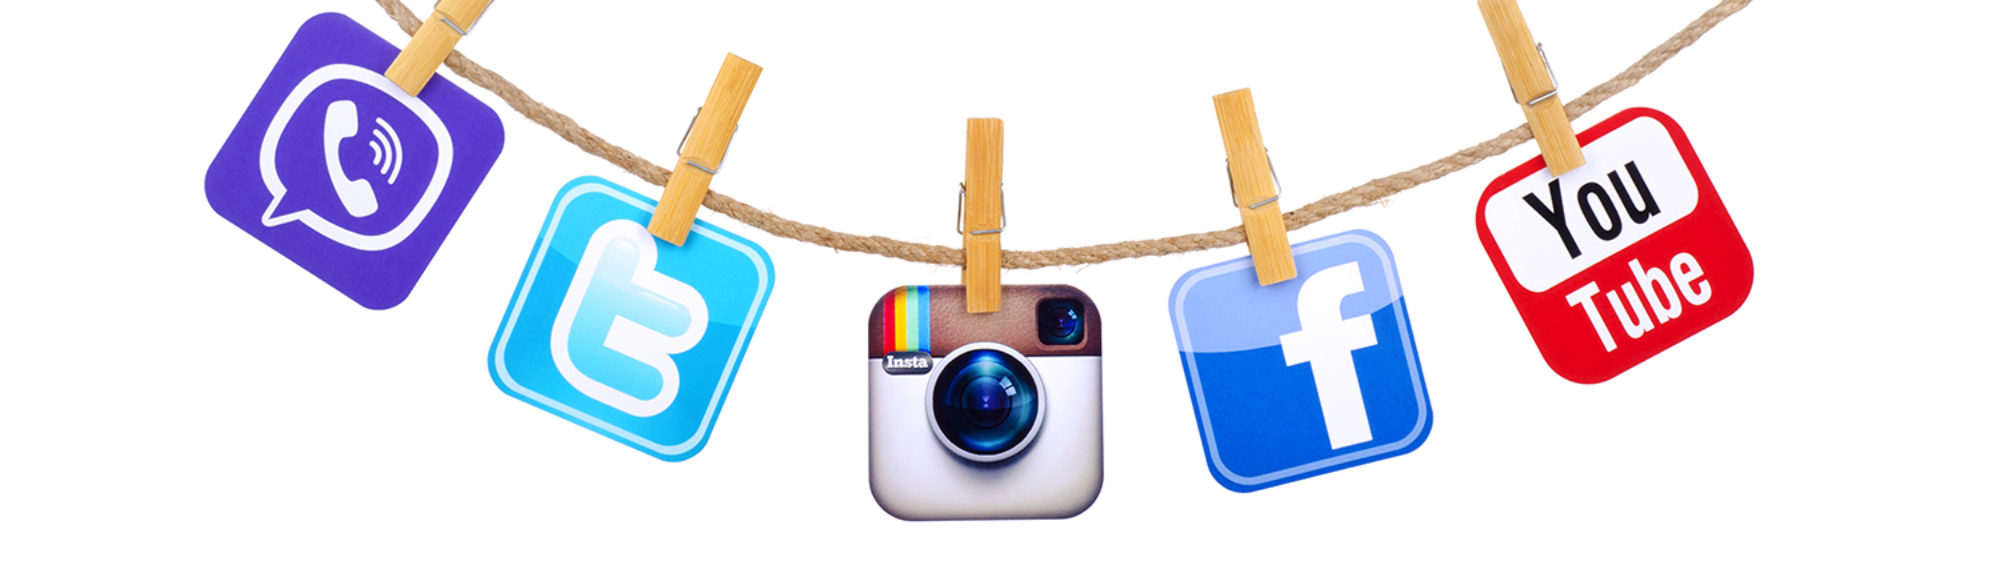 5 Reasons for Building a Business on Instagram